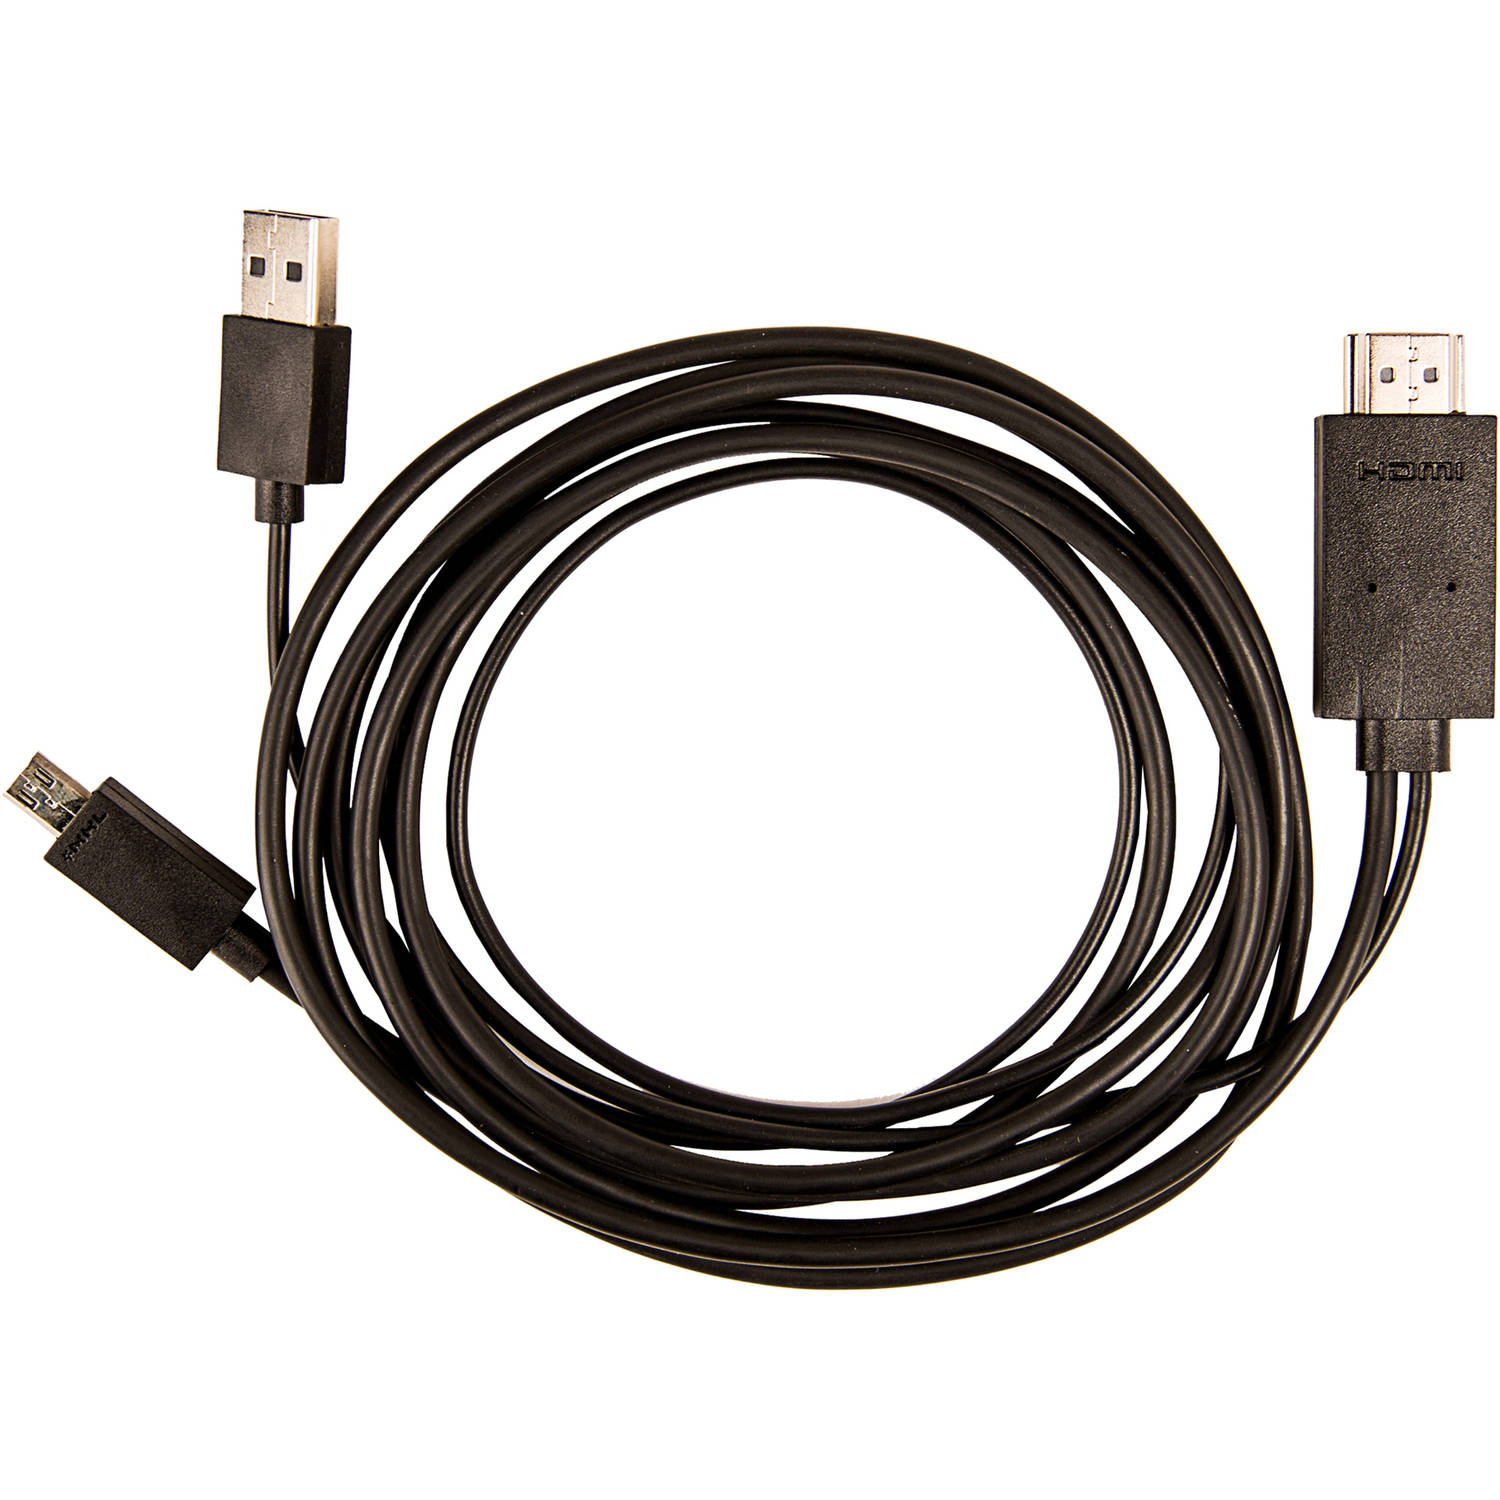 MHL 11 Pin Micro USB to HDMI Built-in MHL Adapter with 6 inch HDMI Cable